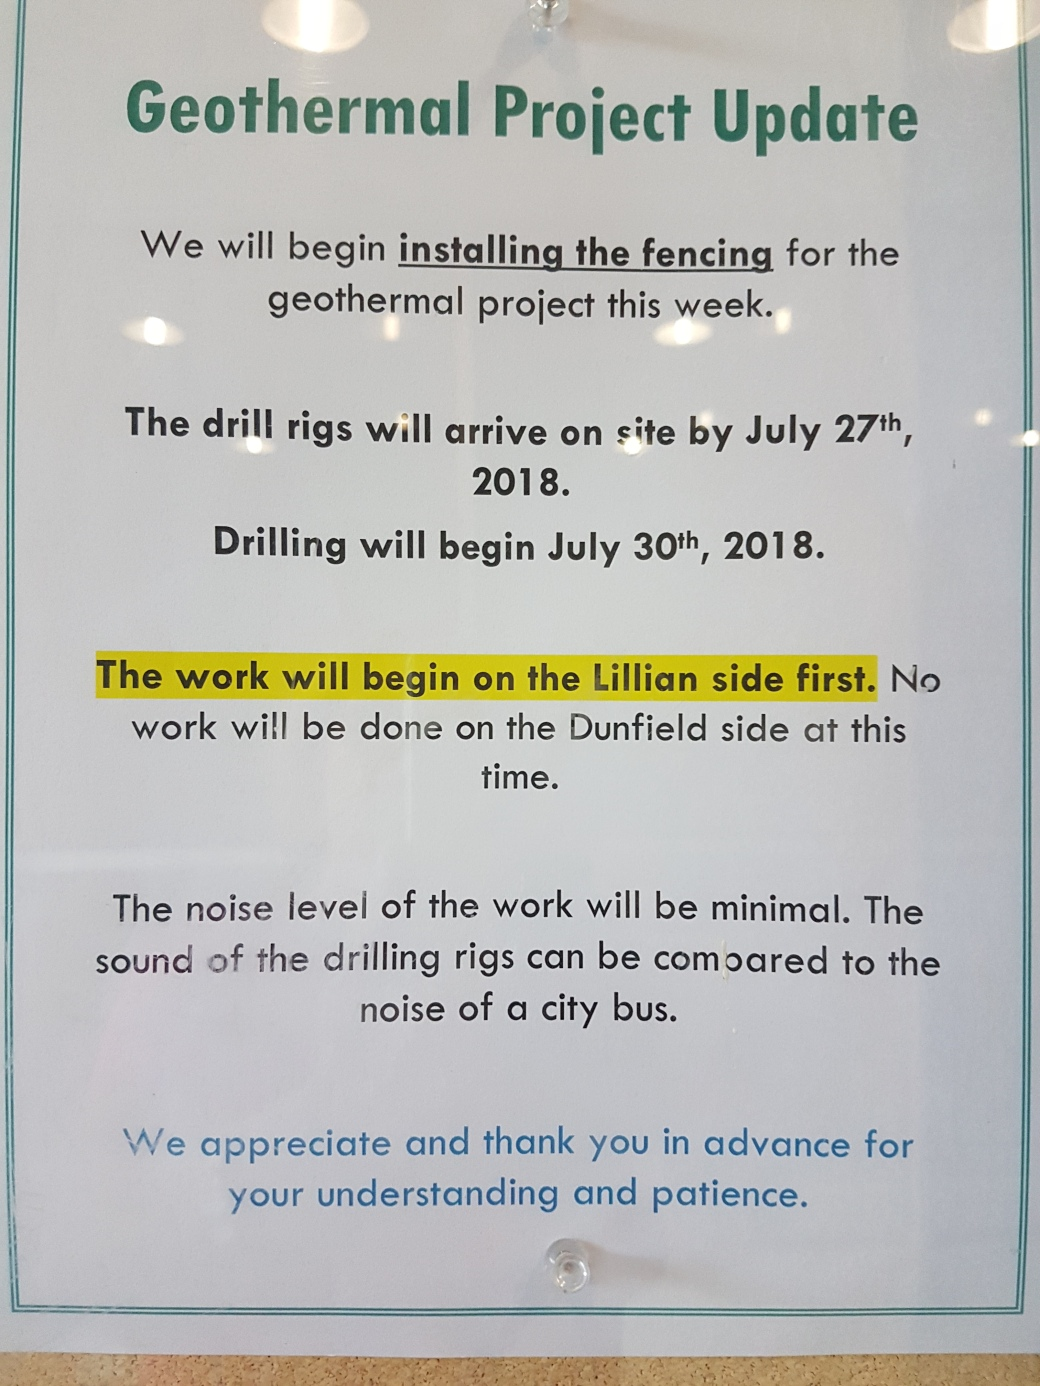 Geothermal Project Update July 27 '18